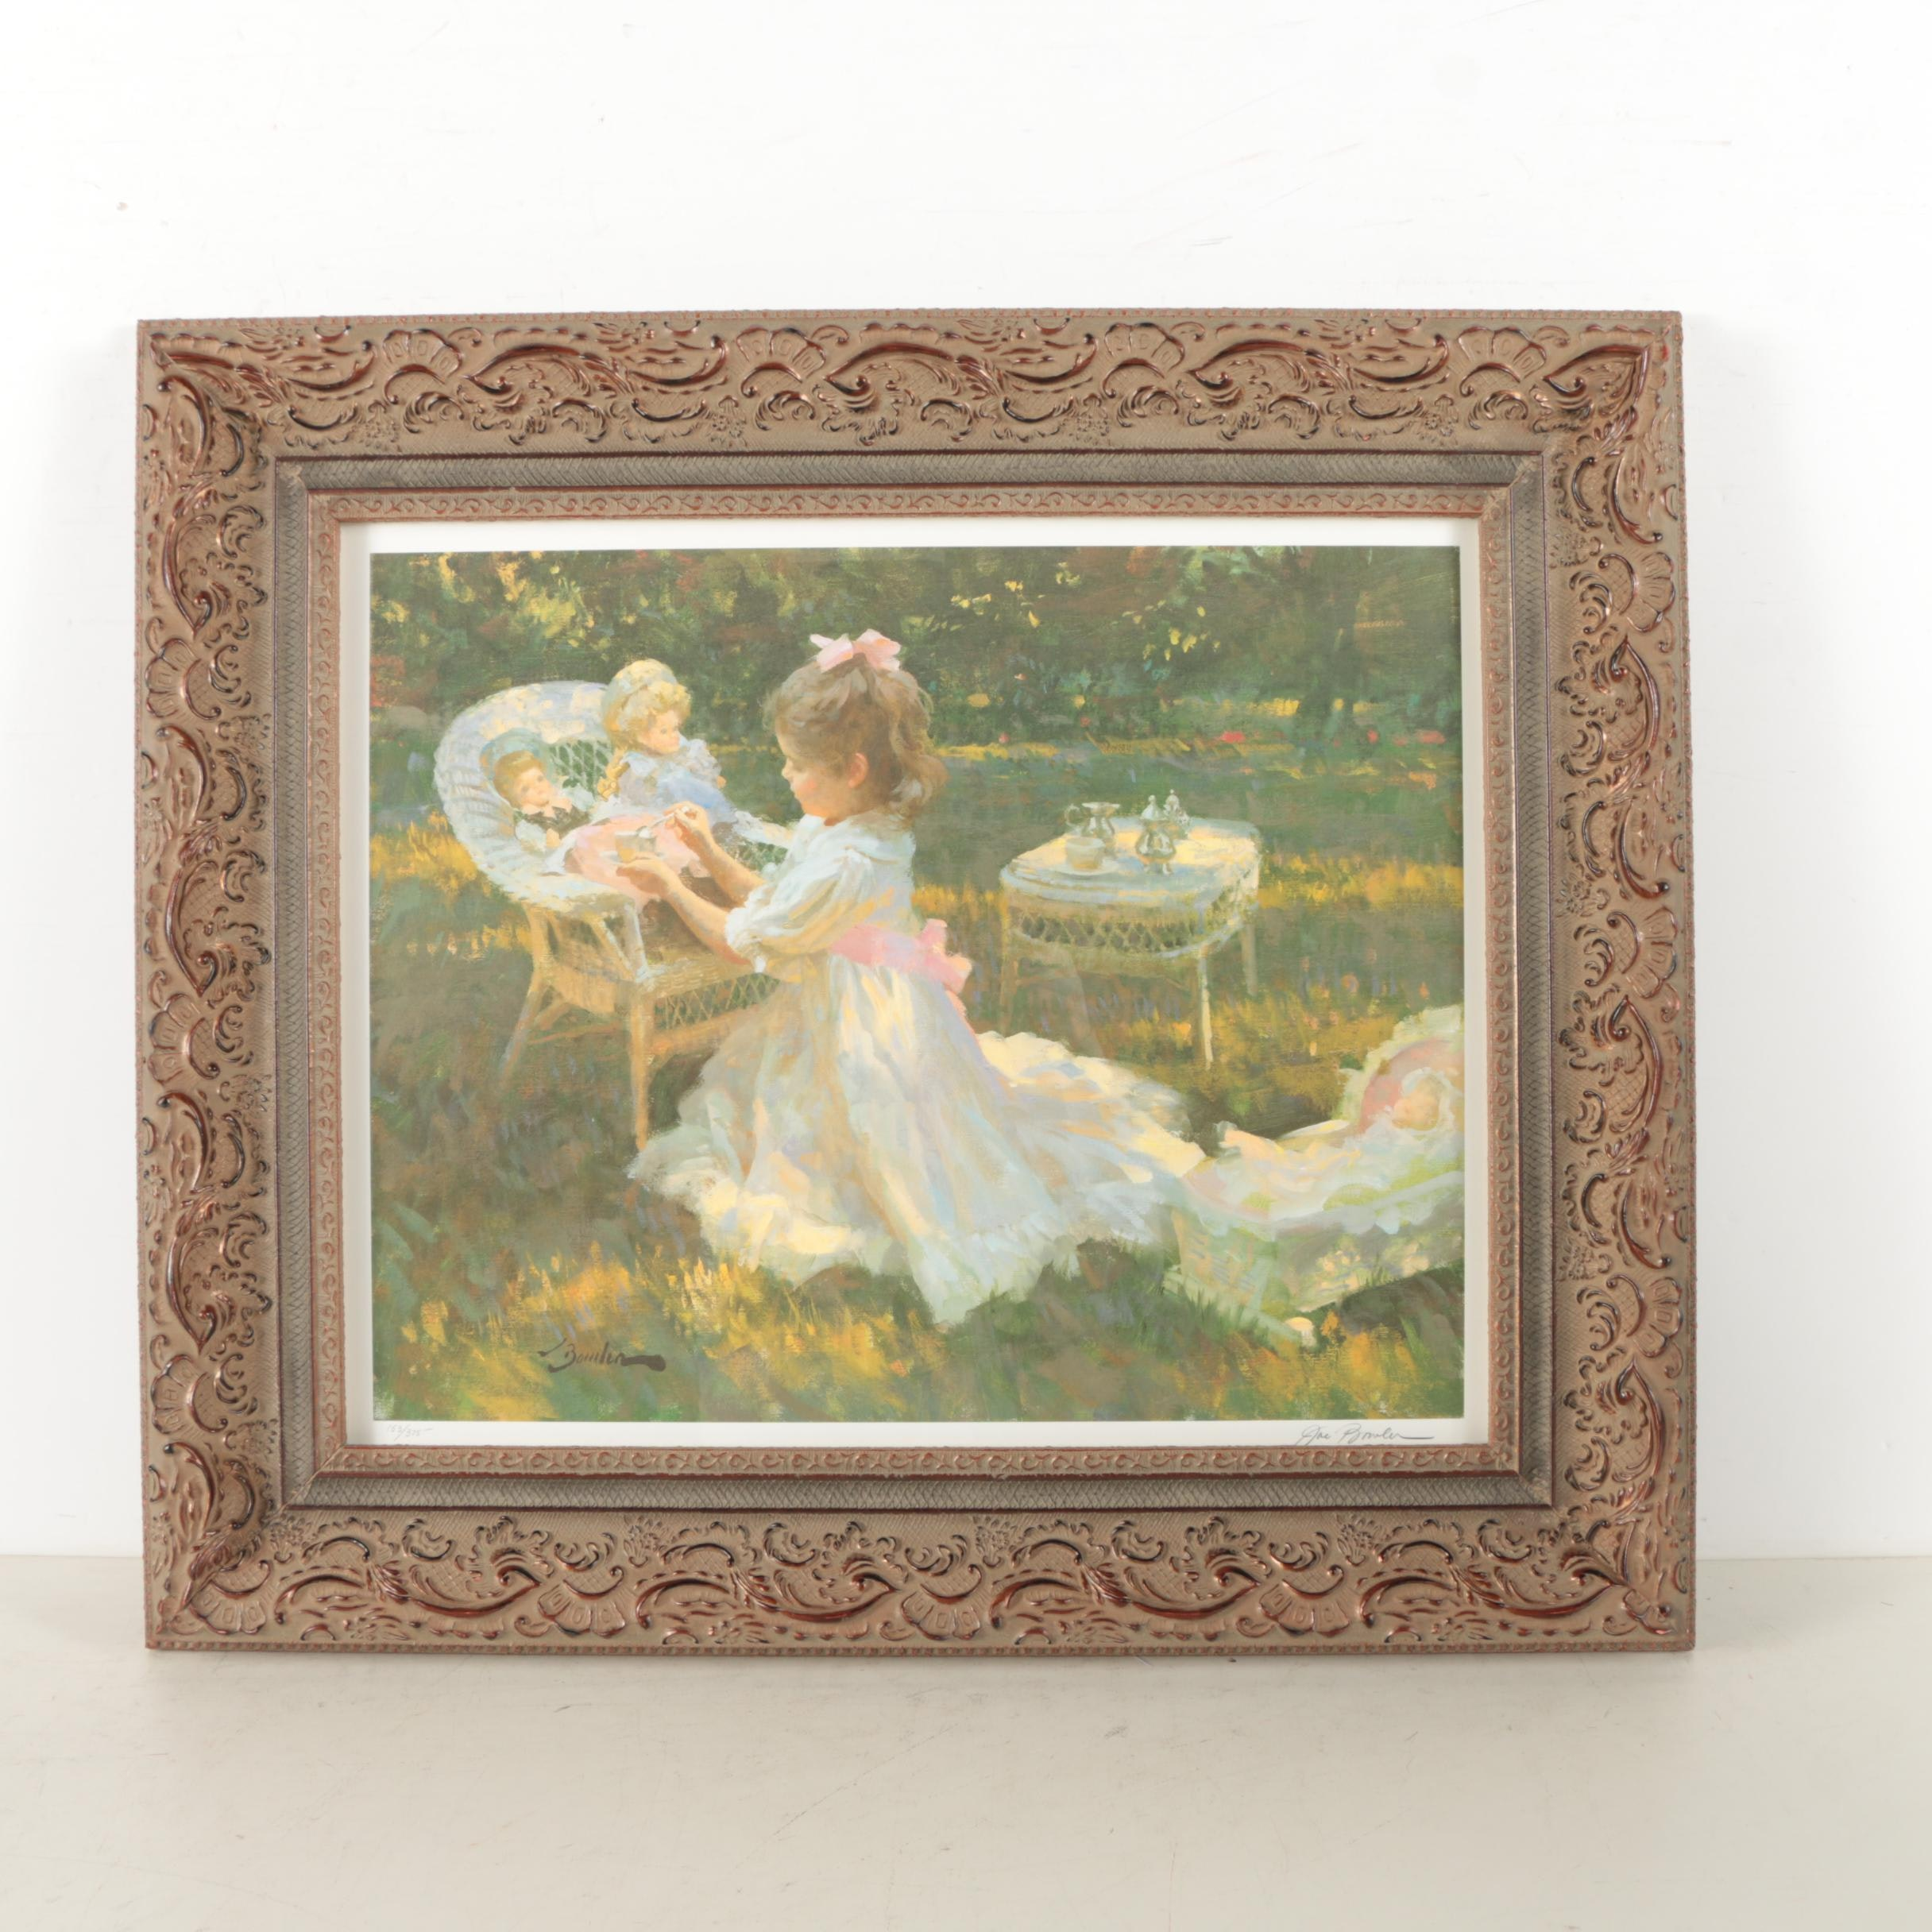 Joe Bowler Limited Edition Offset Lithograph of a Tea Party